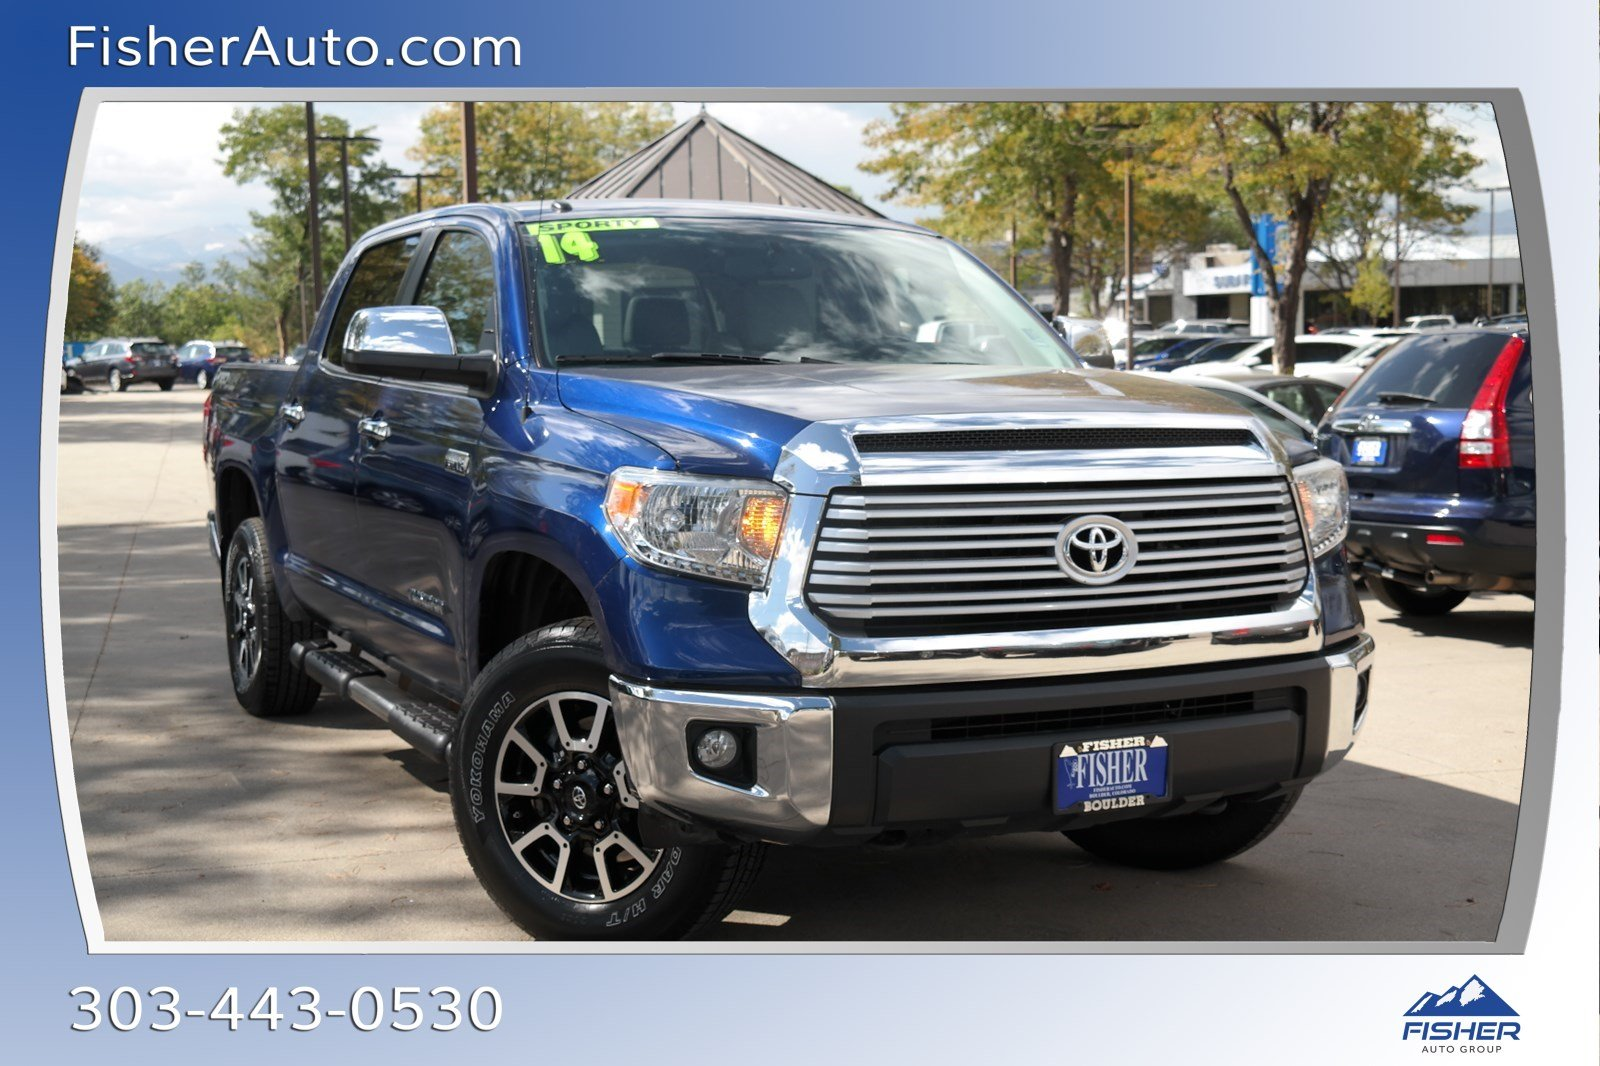 Pre-Owned 2014 Toyota Tundra 4WD CrewMax 5.7L FFV V8 6-Spd AT LTD